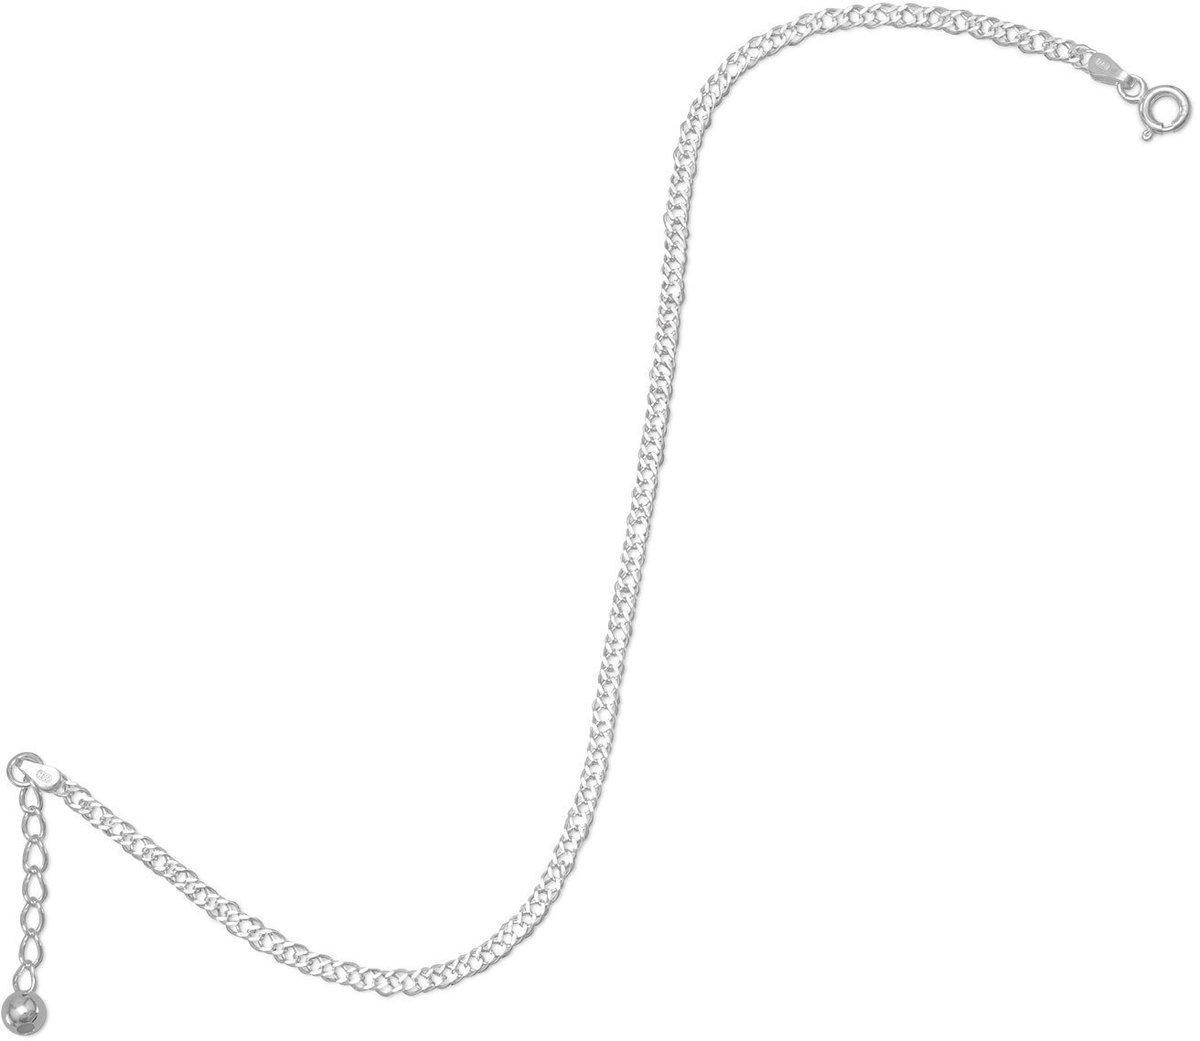 Adjustable Rombo Chain Anklet 925 Sterling Silver